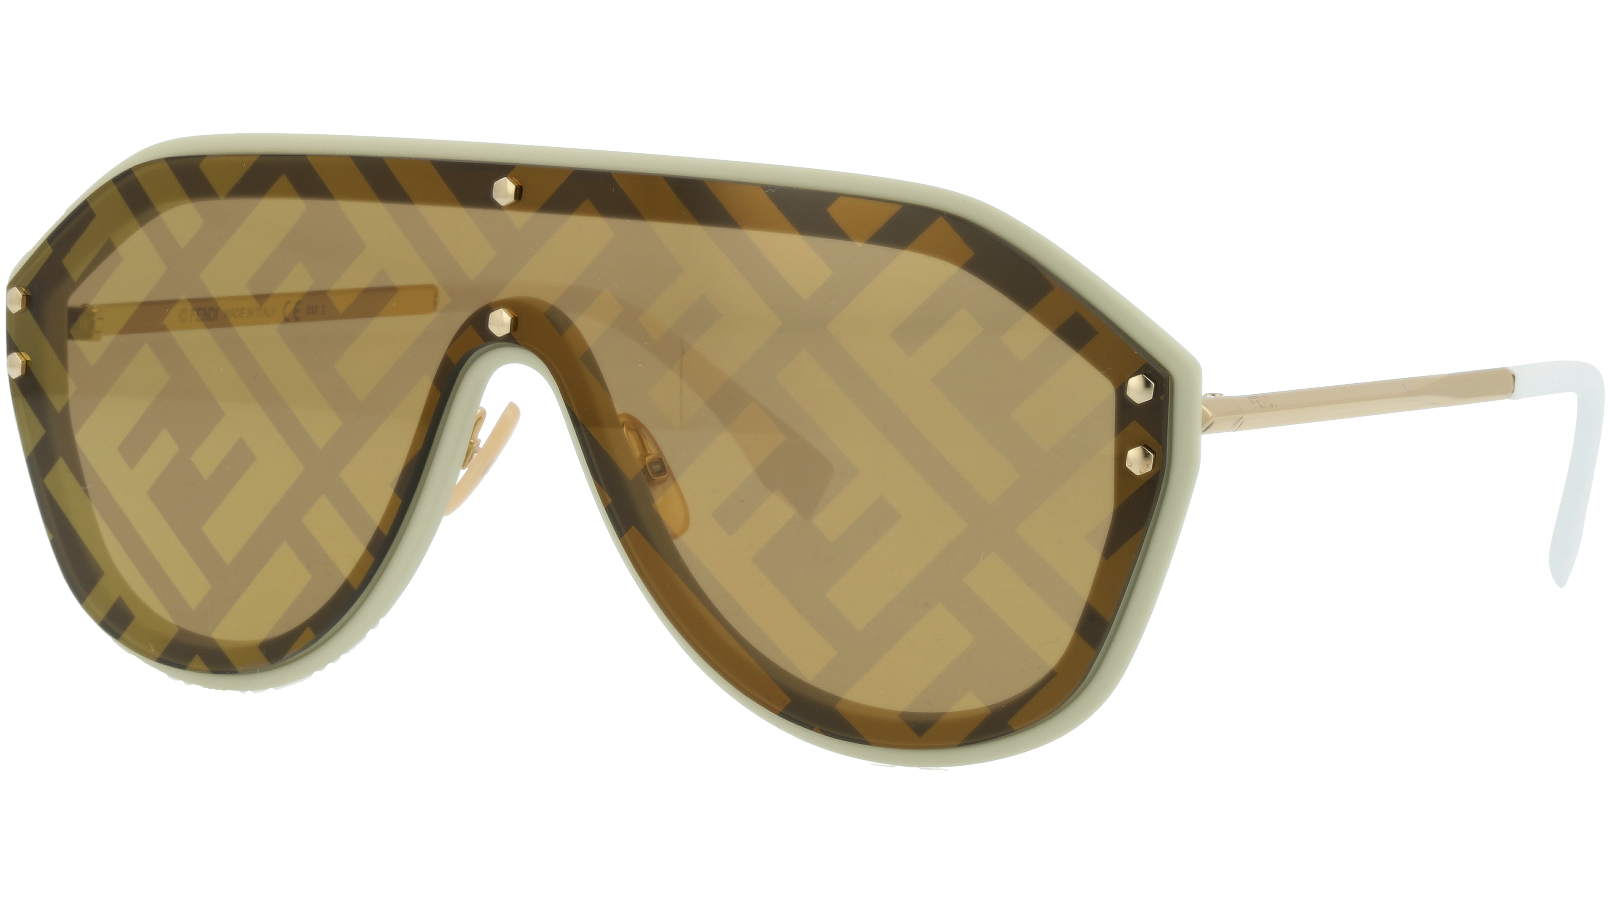 FENDI FFM0039/G/S 10A7Y 99 Beige Shield Sunglasses